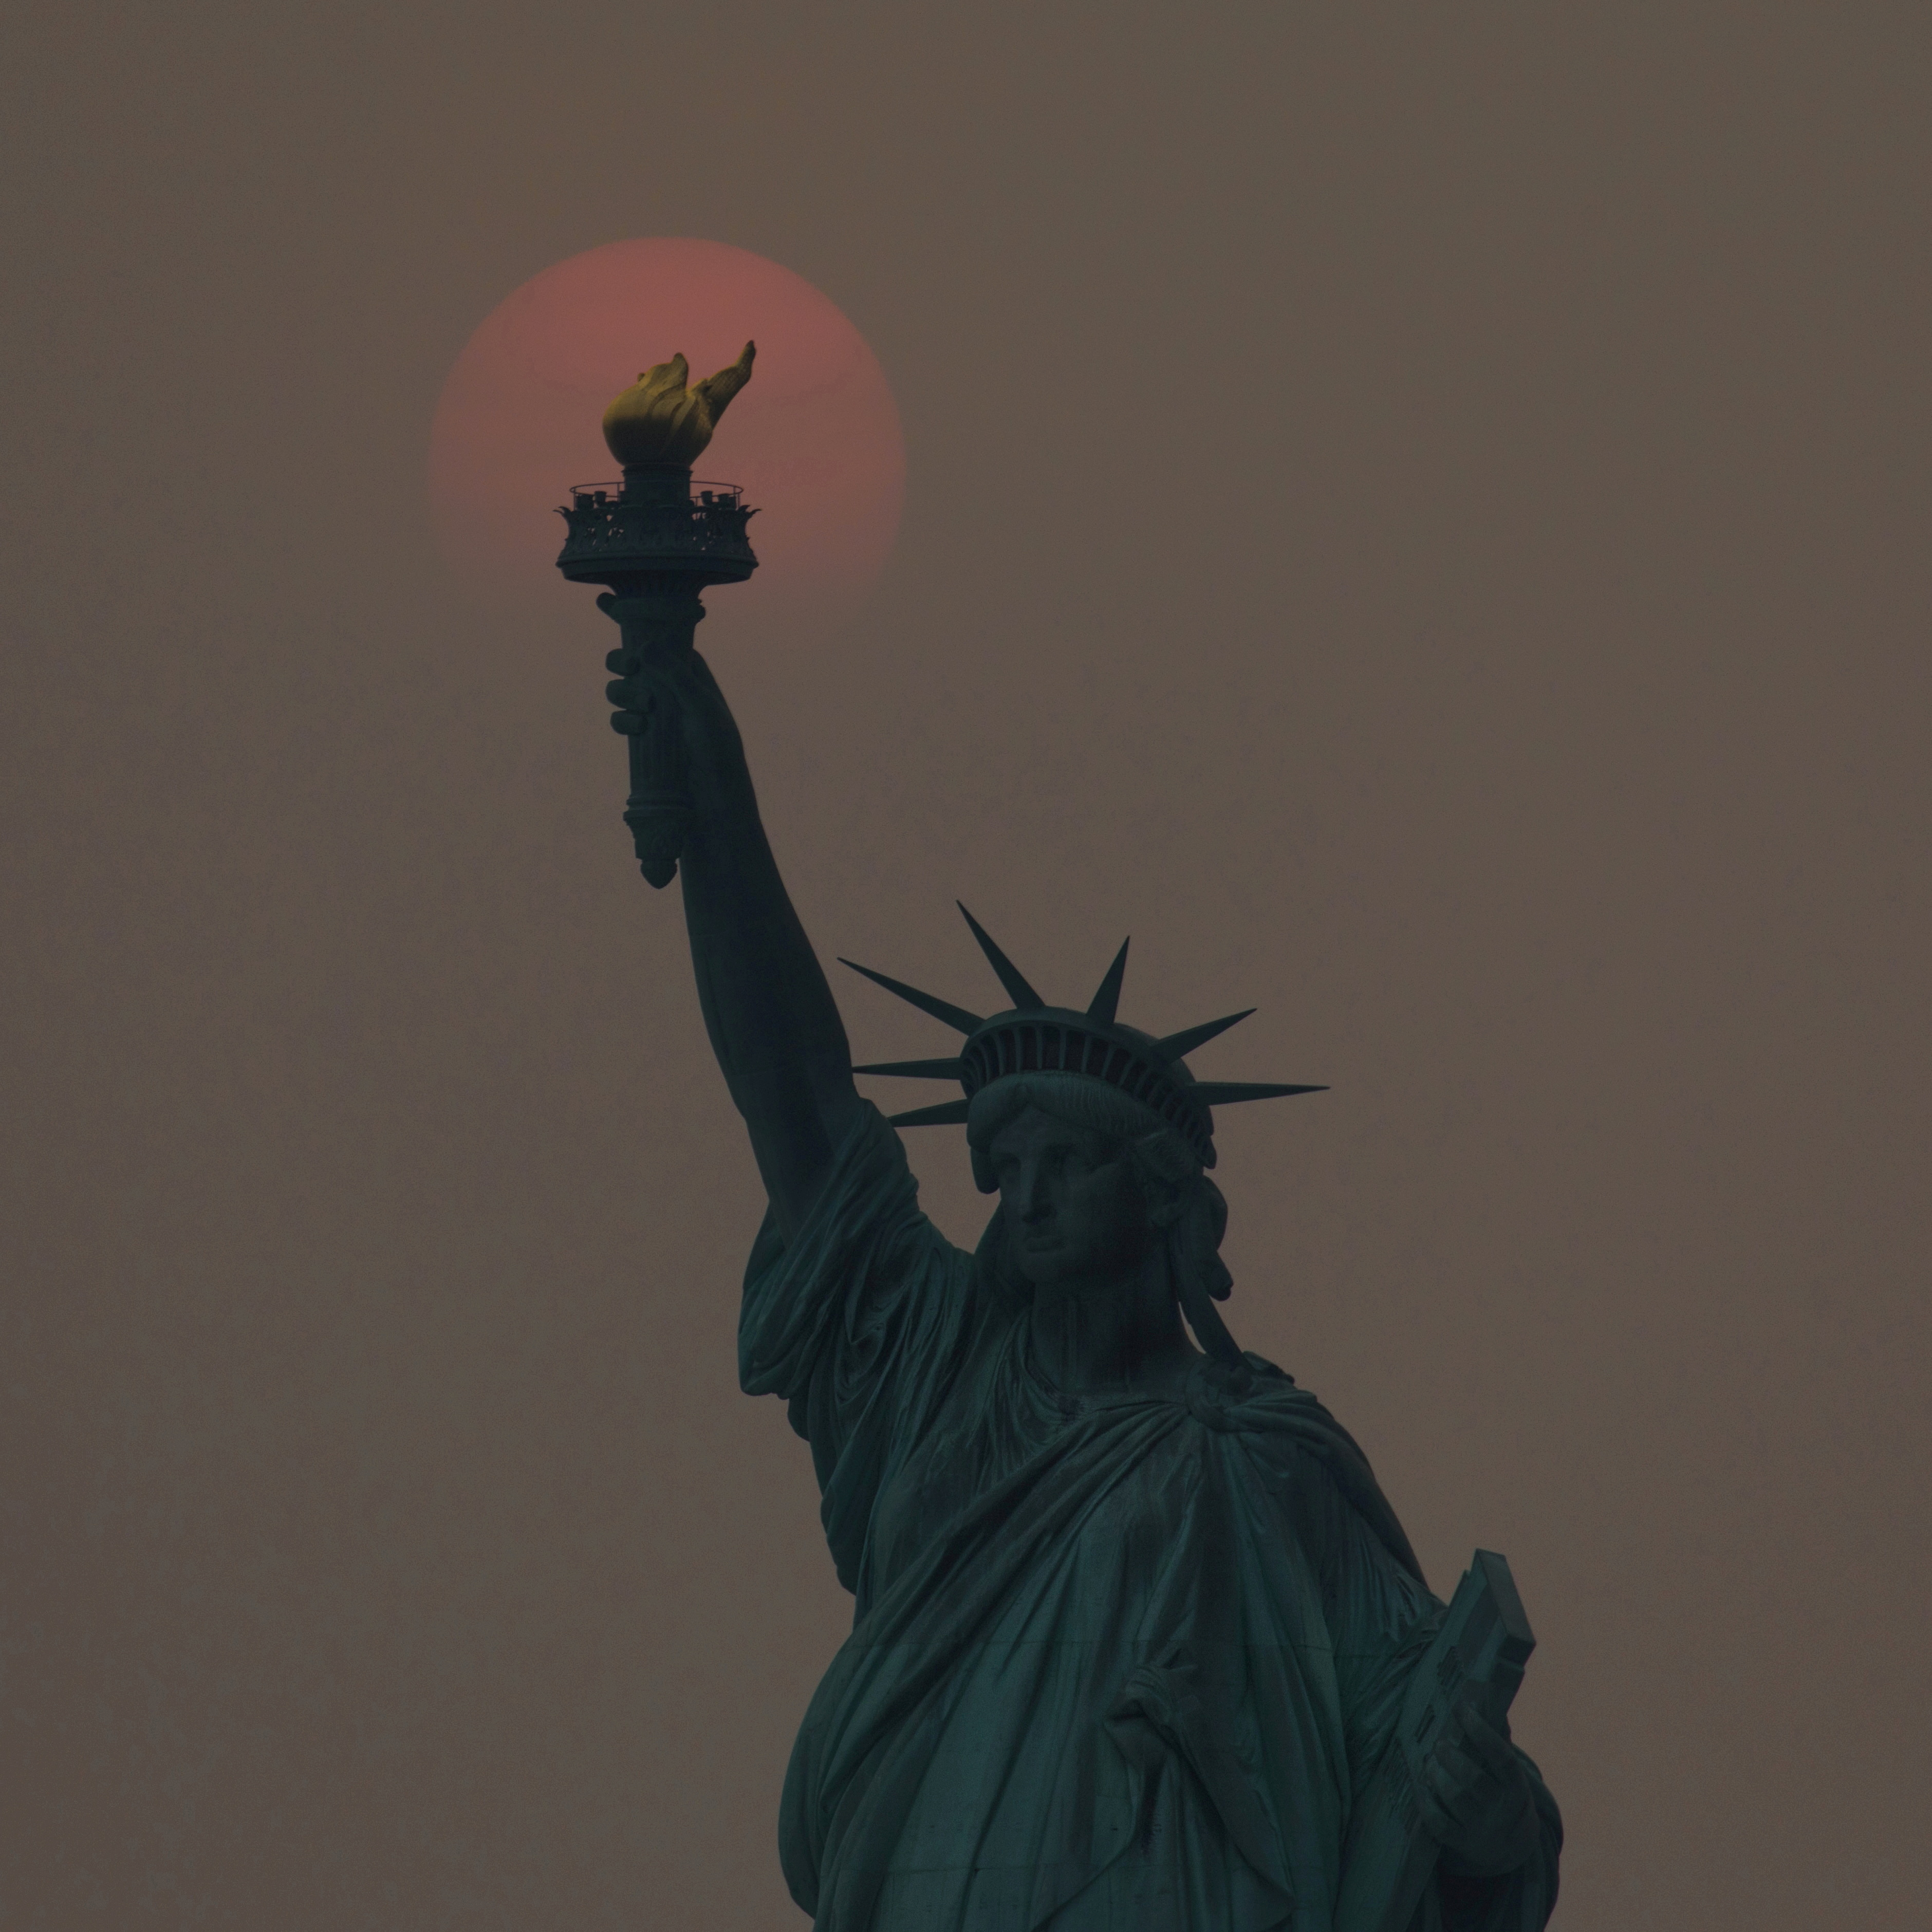 The sun, appearing orange due to smoke haze from forest fires, sets behind the Statue of Liberty in New York City, New York, U.S., July 20, 2021. Picture taken July 20, 2021. REUTERS/Bjoern Kils/New York Media Boat